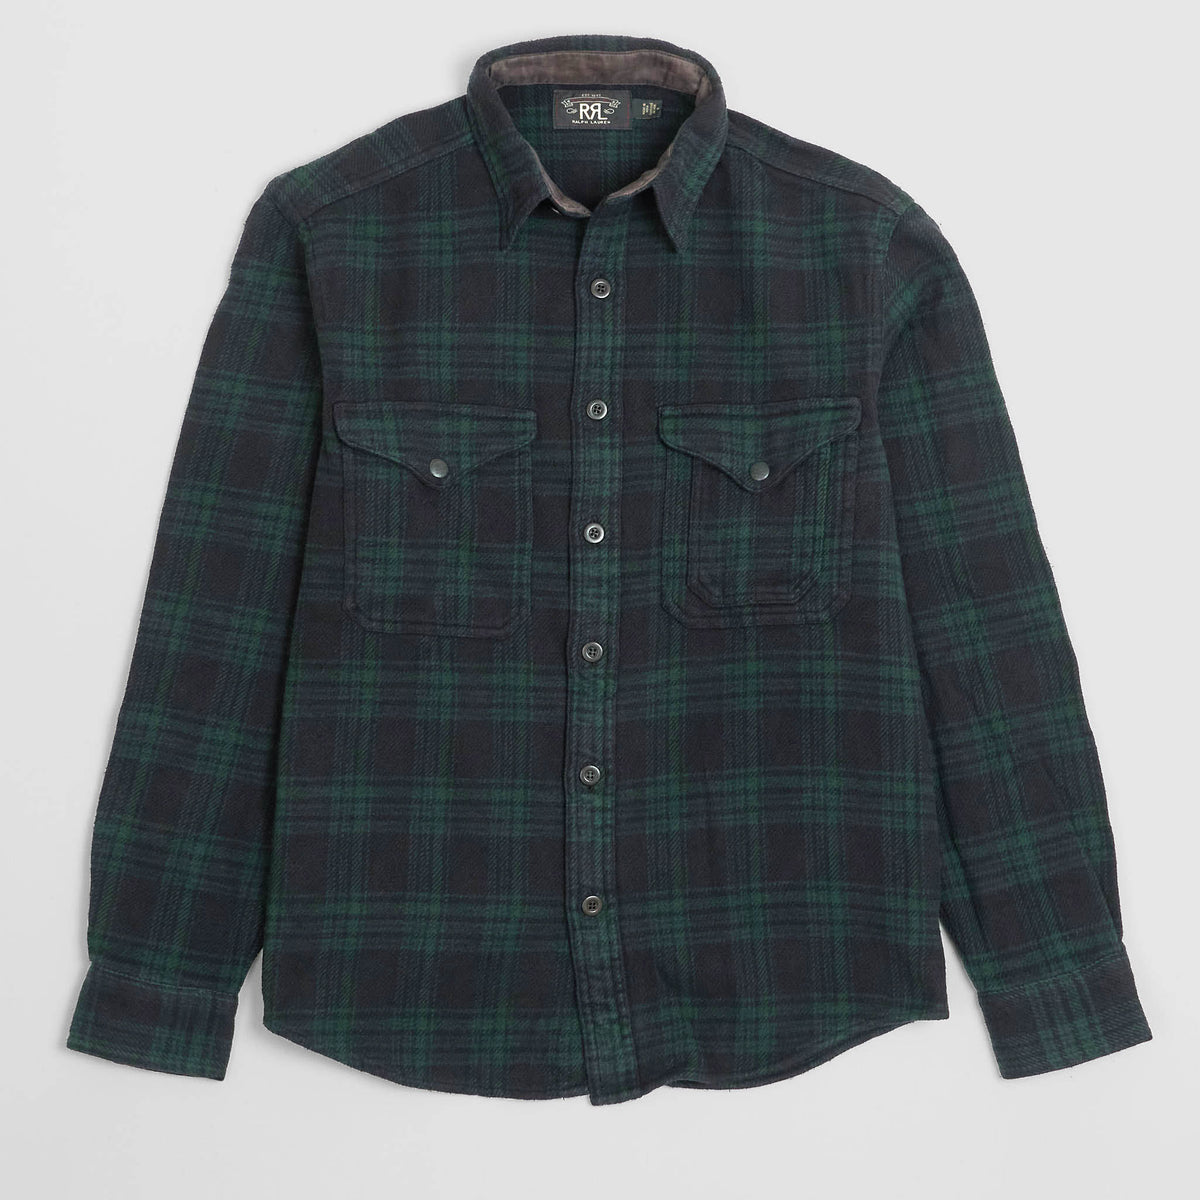 Double RL Heavy Cotton Flannel Overshirt